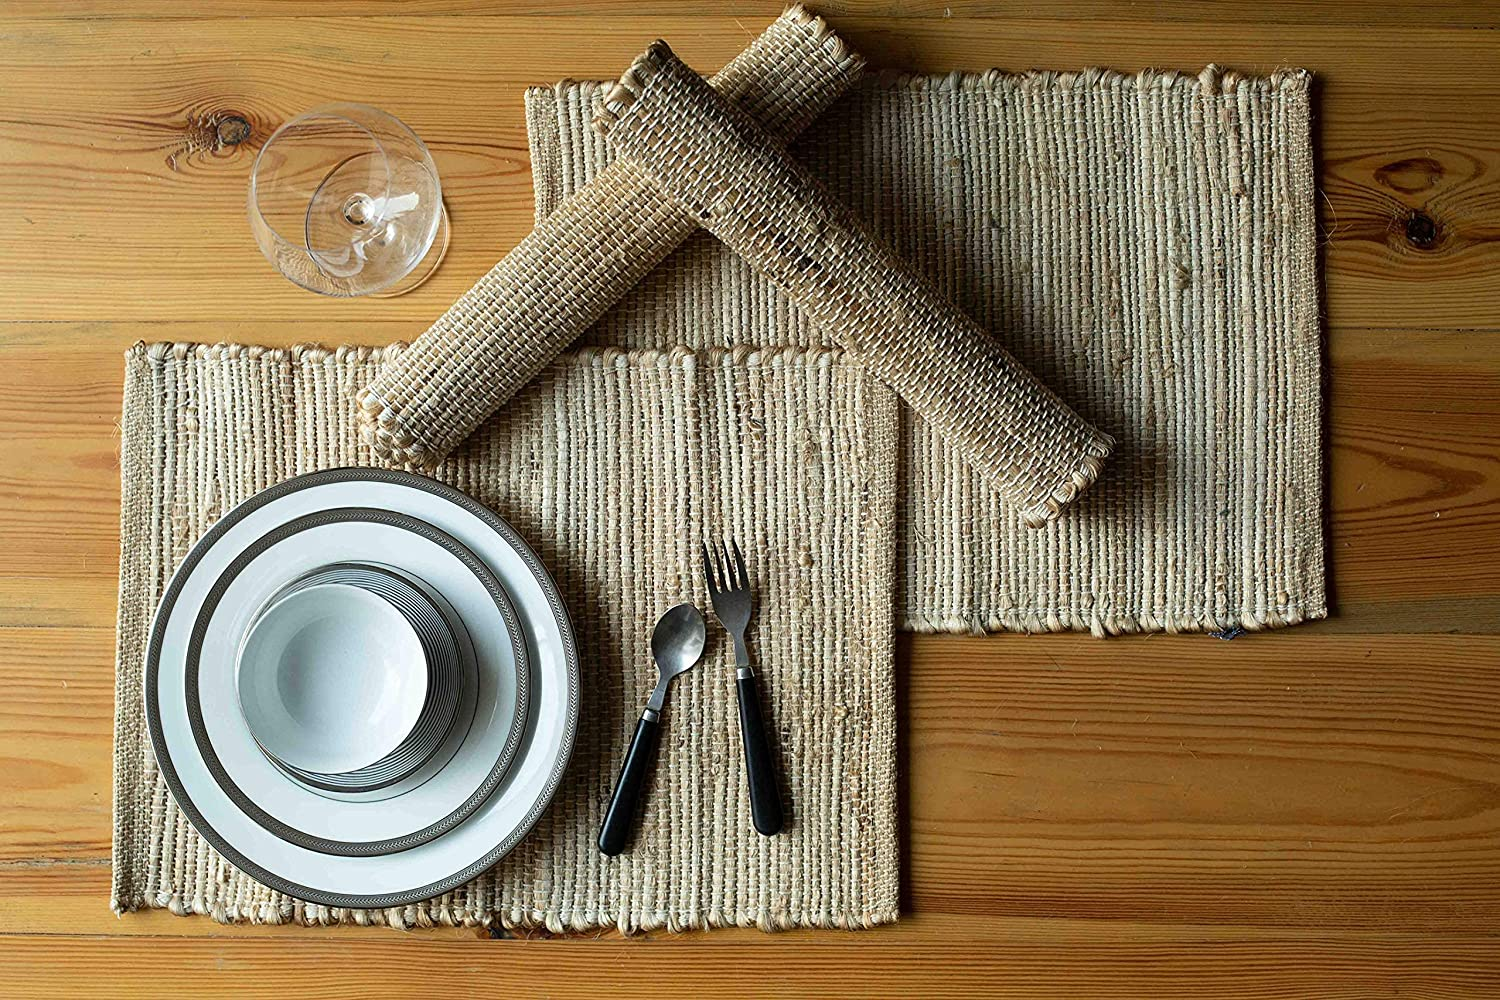 Chardin Max 63% OFF Home Eco-Friendly Natural Jute Online limited product Ru Hemp Table Placemats